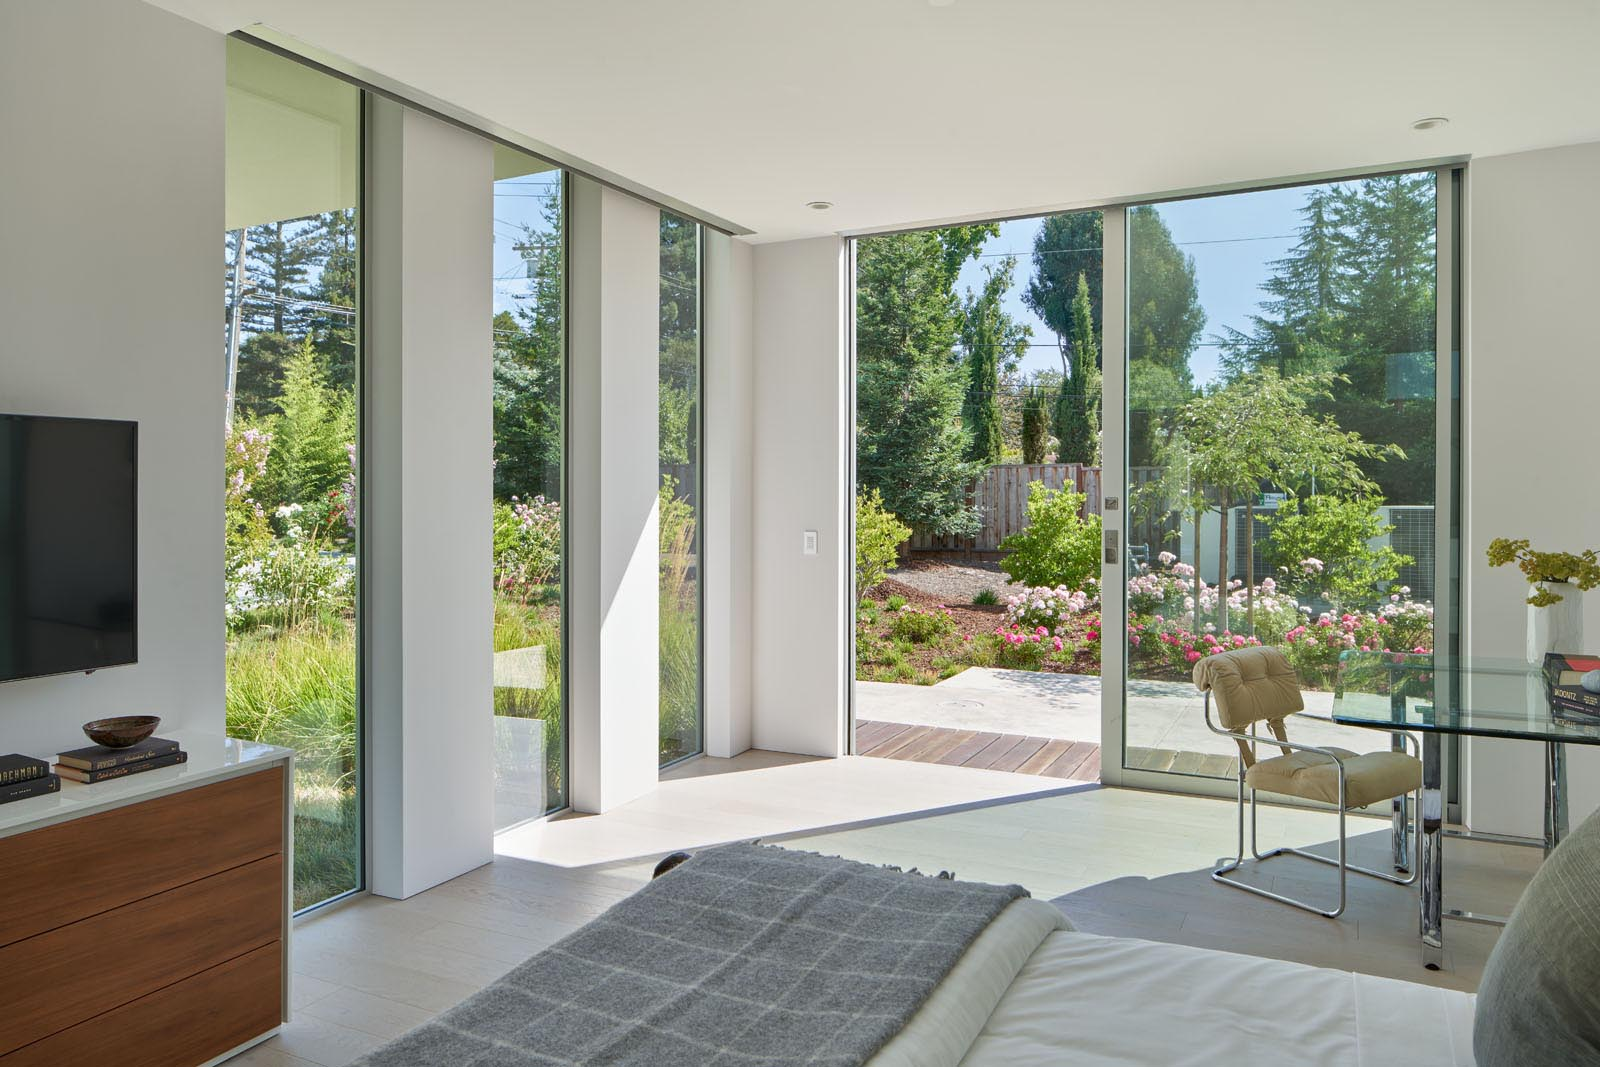 The bedroom has floor-to-ceiling windows and a sliding glass door that opens to a patio and the garden.